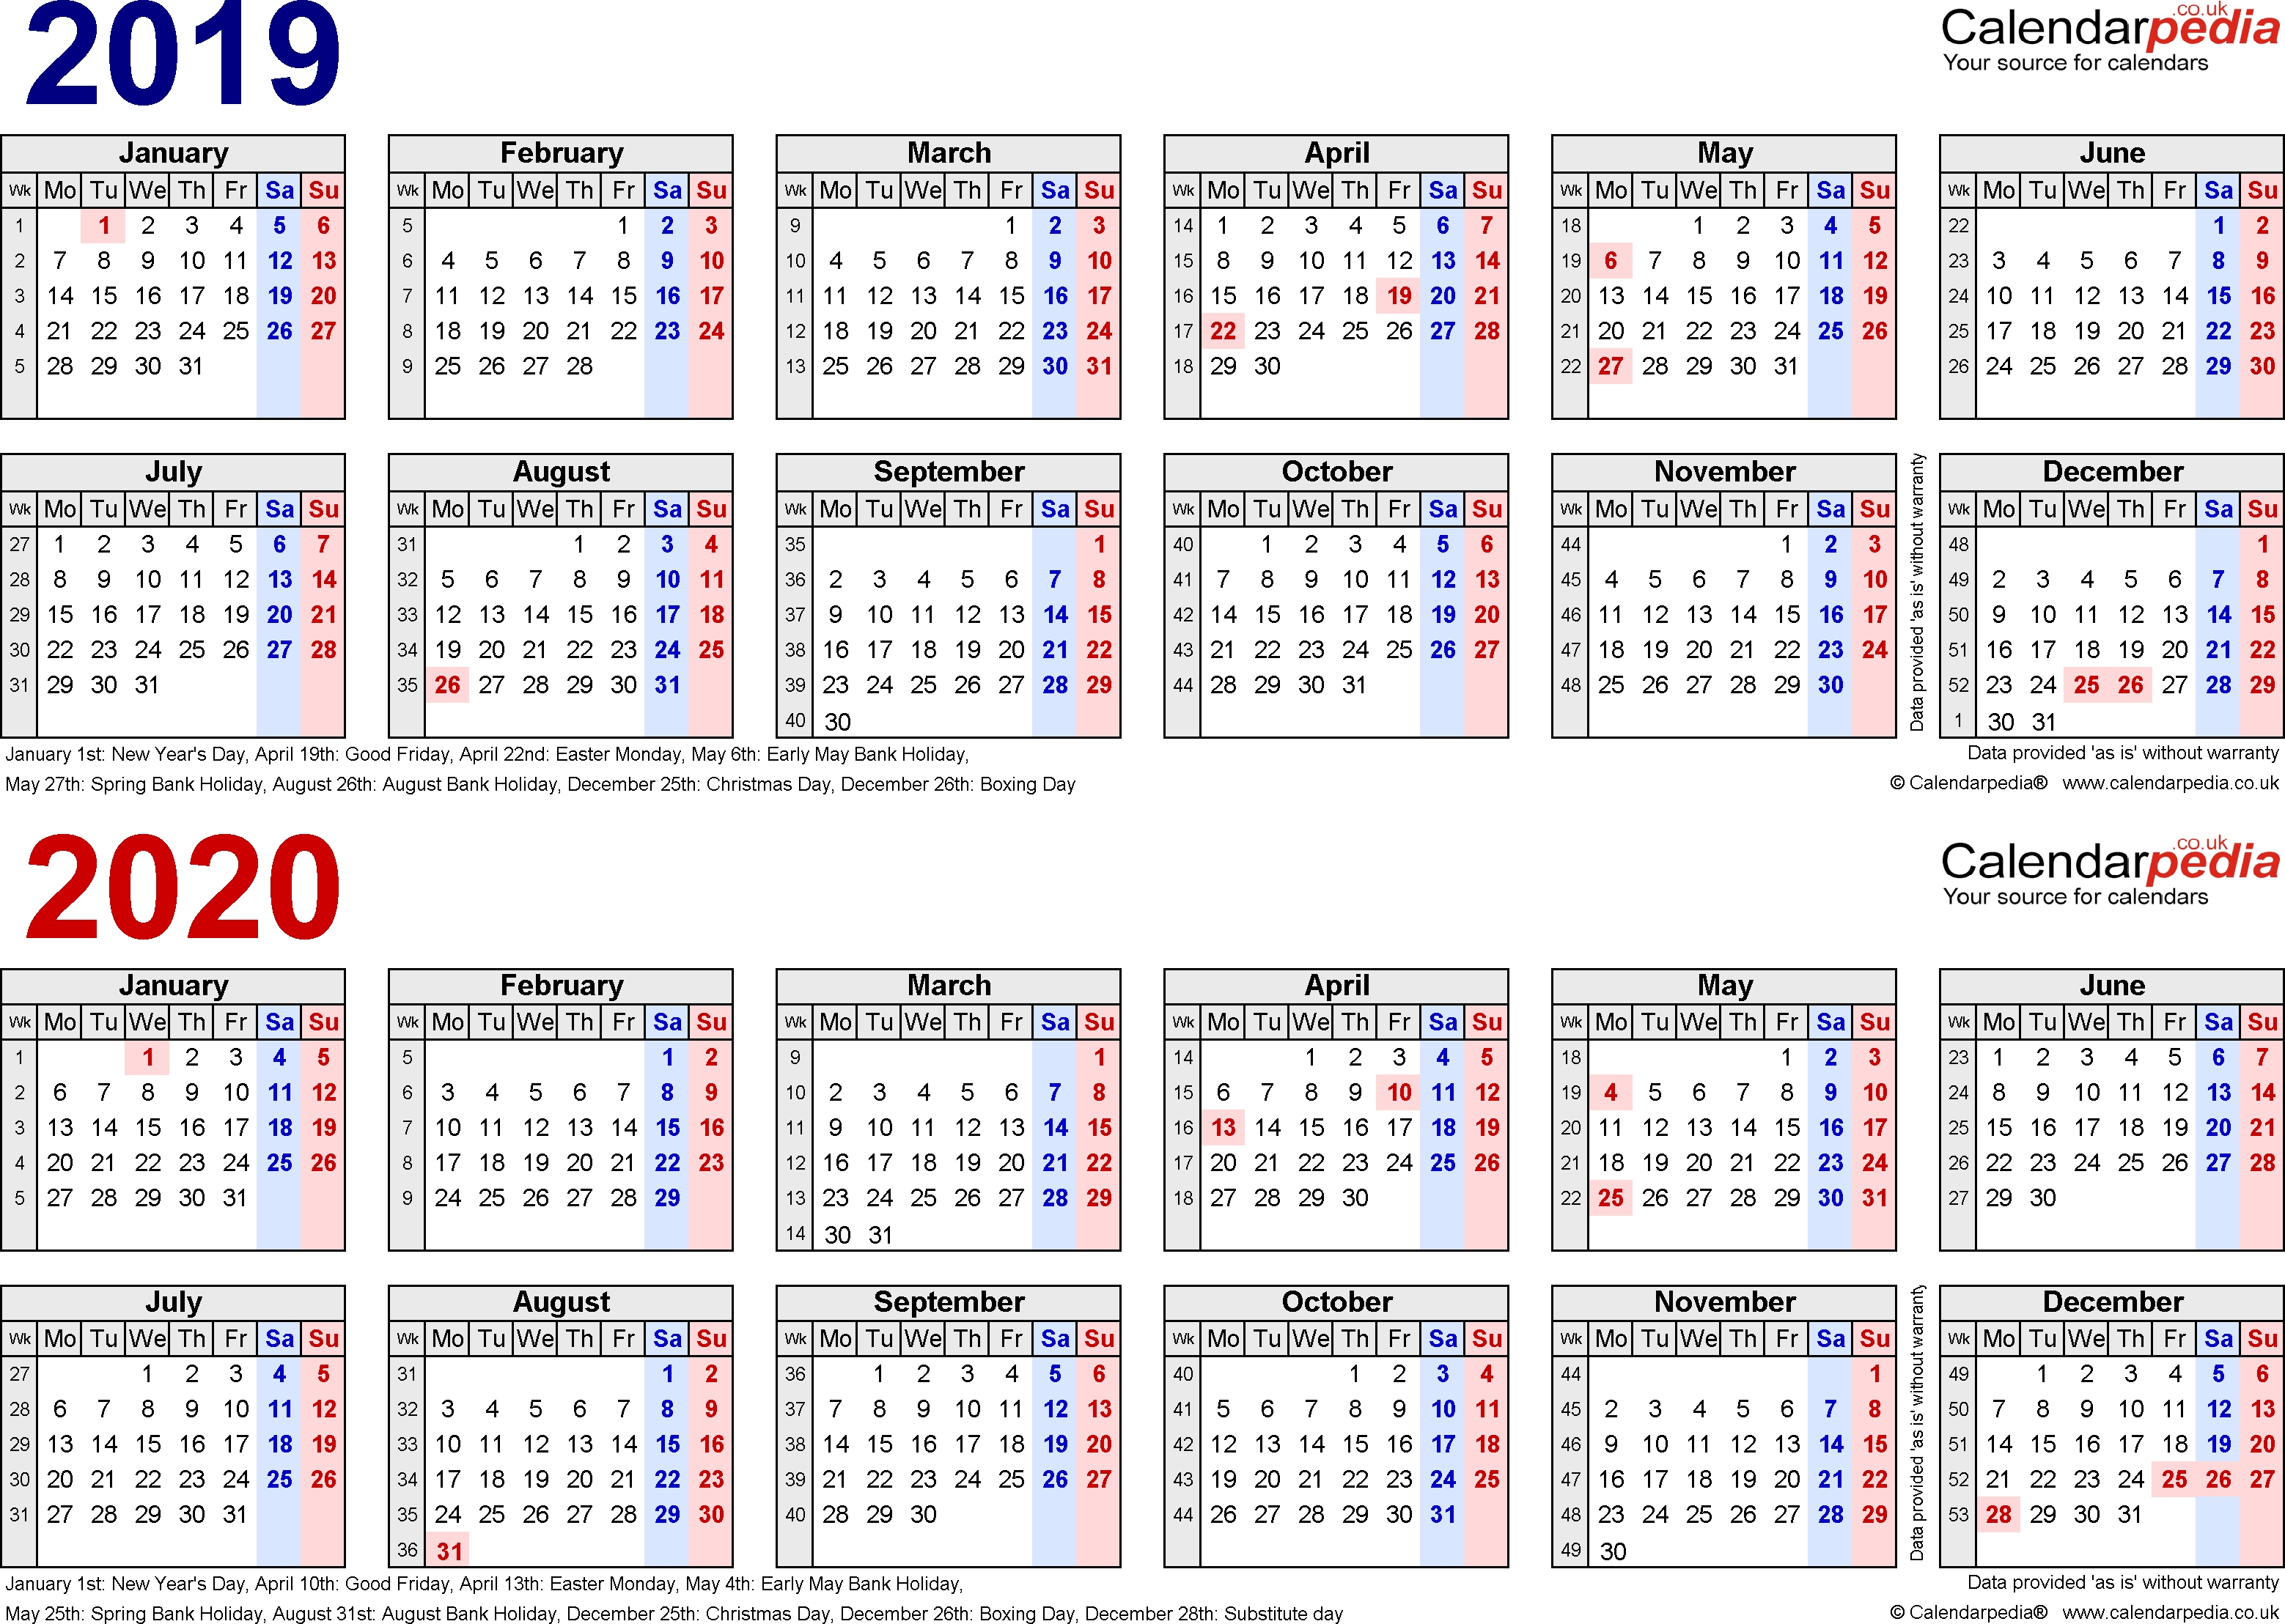 Two Year Calendars For 2019 & 2020 (Uk) For Pdf 2 Year Calendar 2019 And 2020